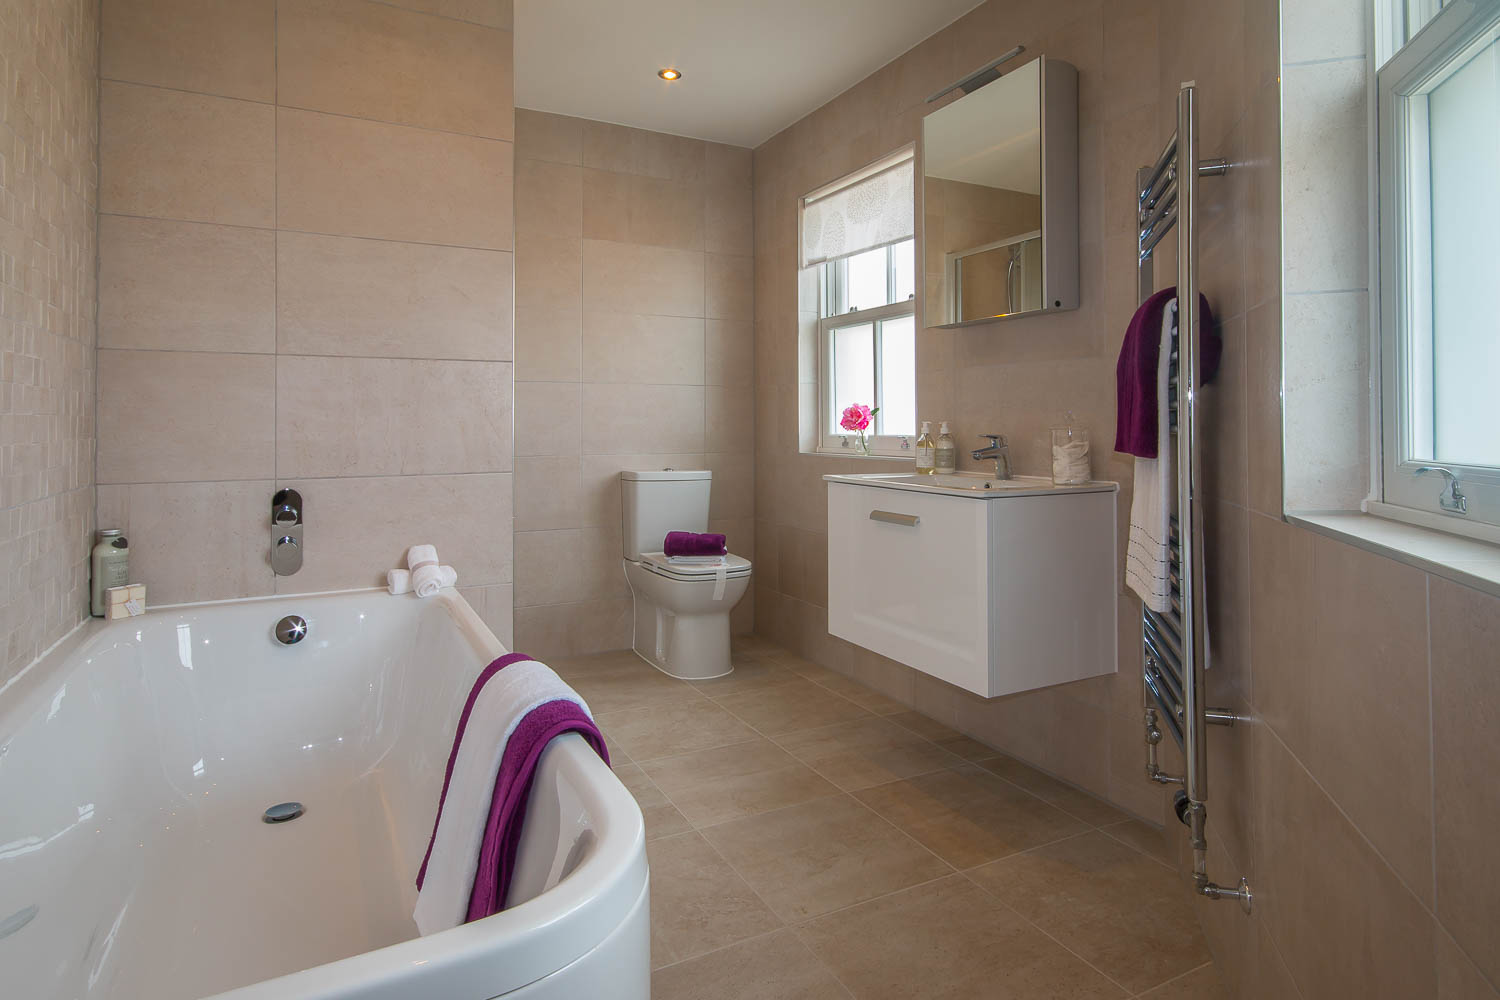 Bathroom Design Yeovil floor & wall tiling specialist in domestic & commercial contracts